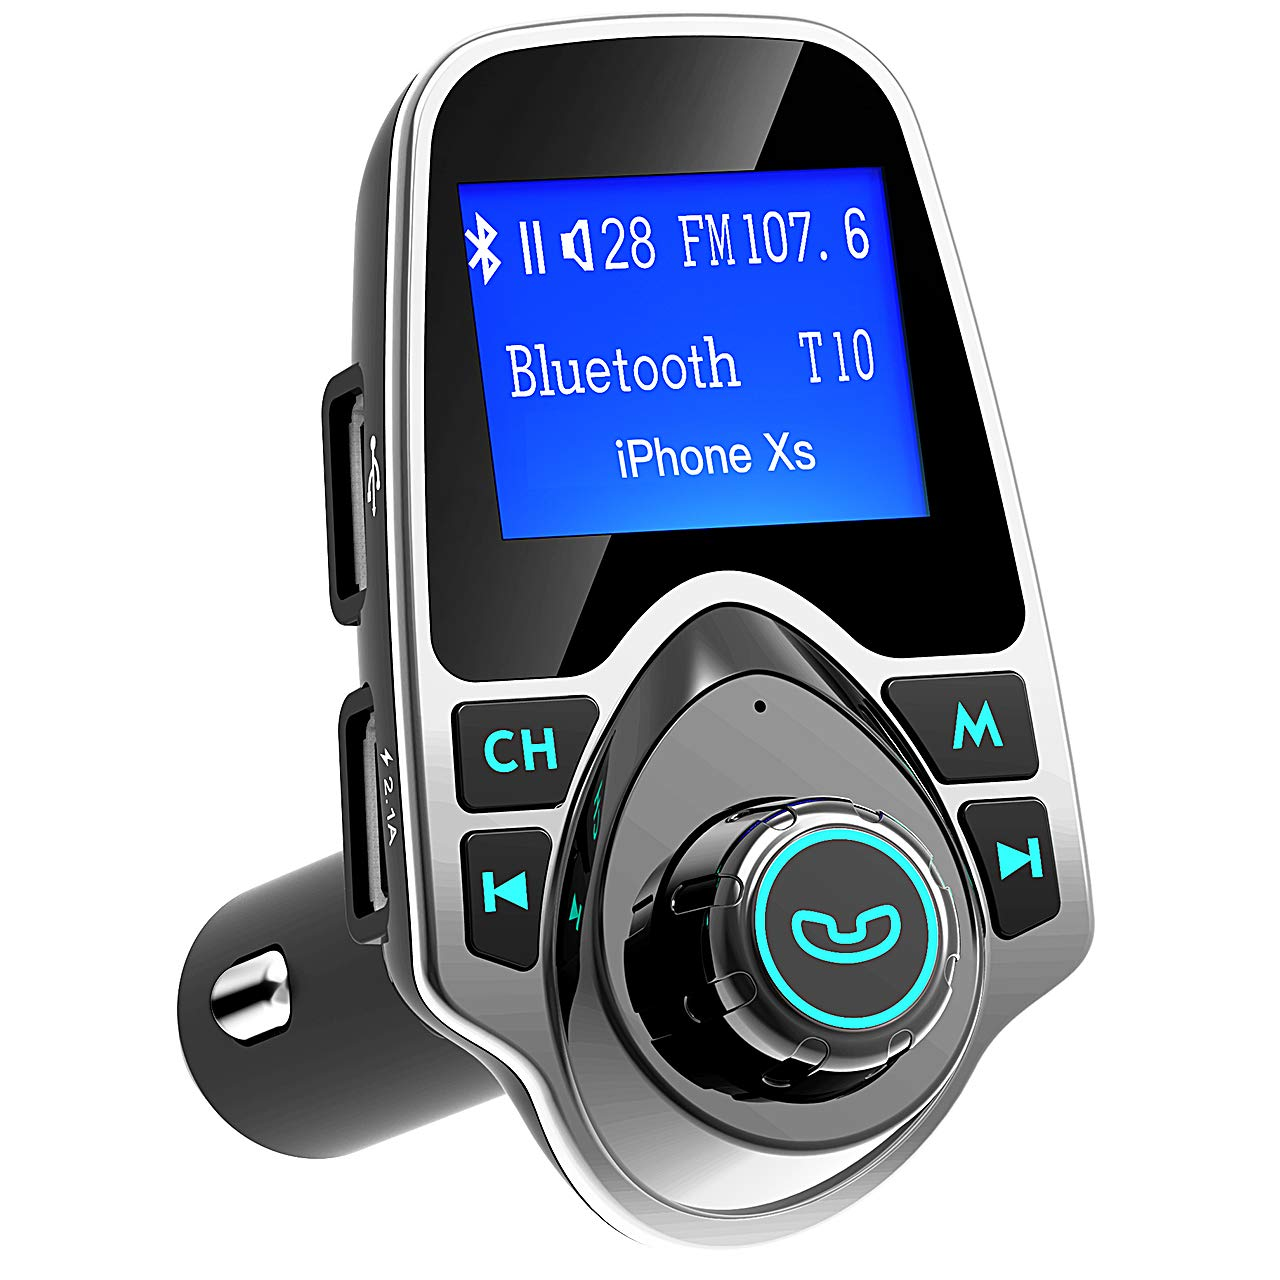 Bluetooth FM Transmitter for Car, TopElek Wireless Radio Transmitter Adapter with Power Off Function, Hands-Free Car Kit Charger, 1.44'' LCD Diaplay, Music Player, 2 USB Ports, AUX in/Out, TF Card